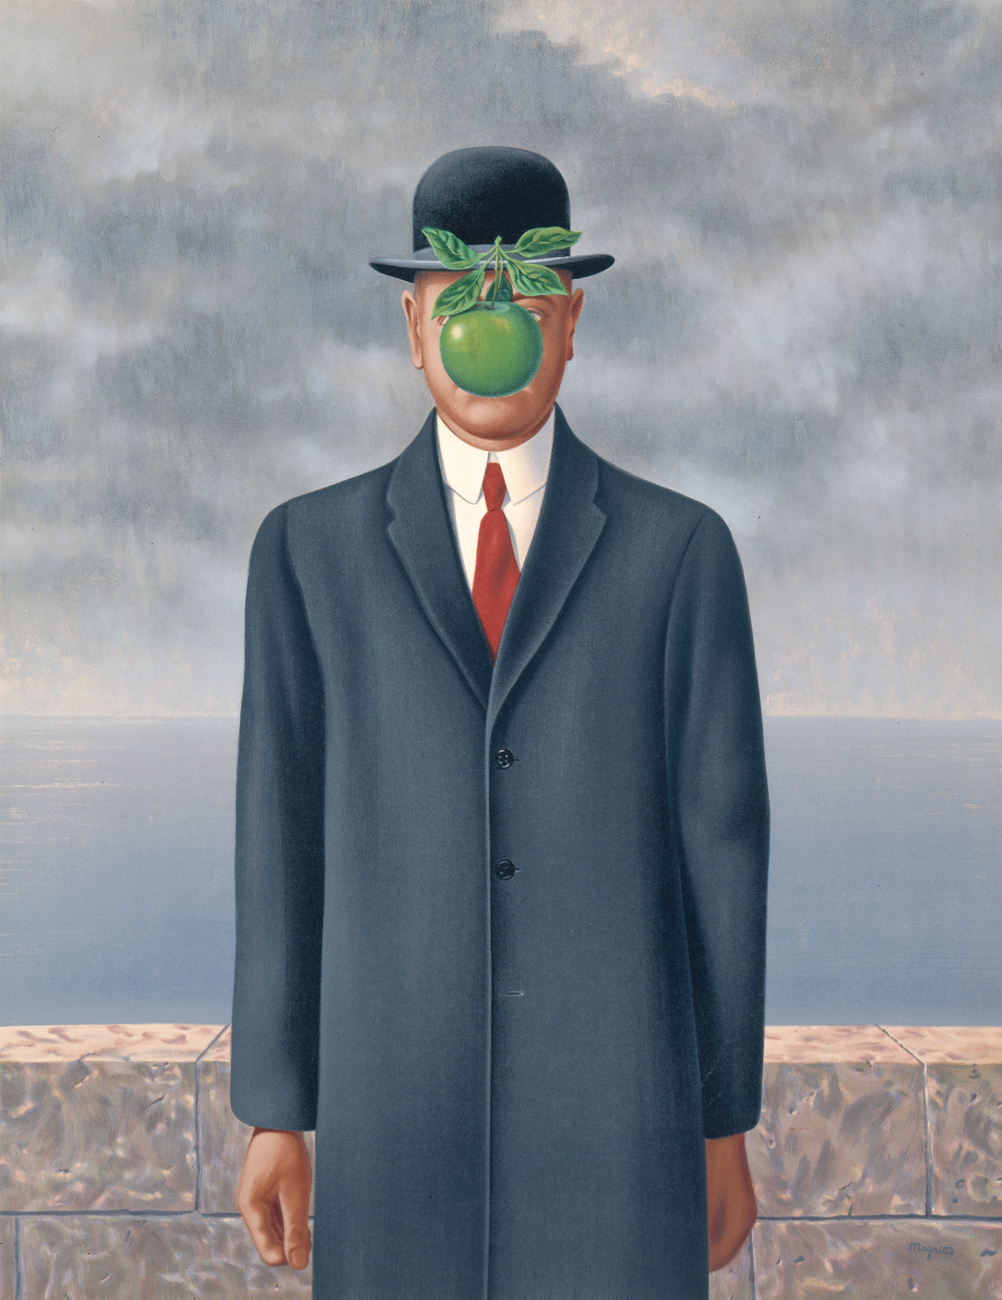 The Son of Man , René Magritte San Francisco Museum of Modern Art, 1964